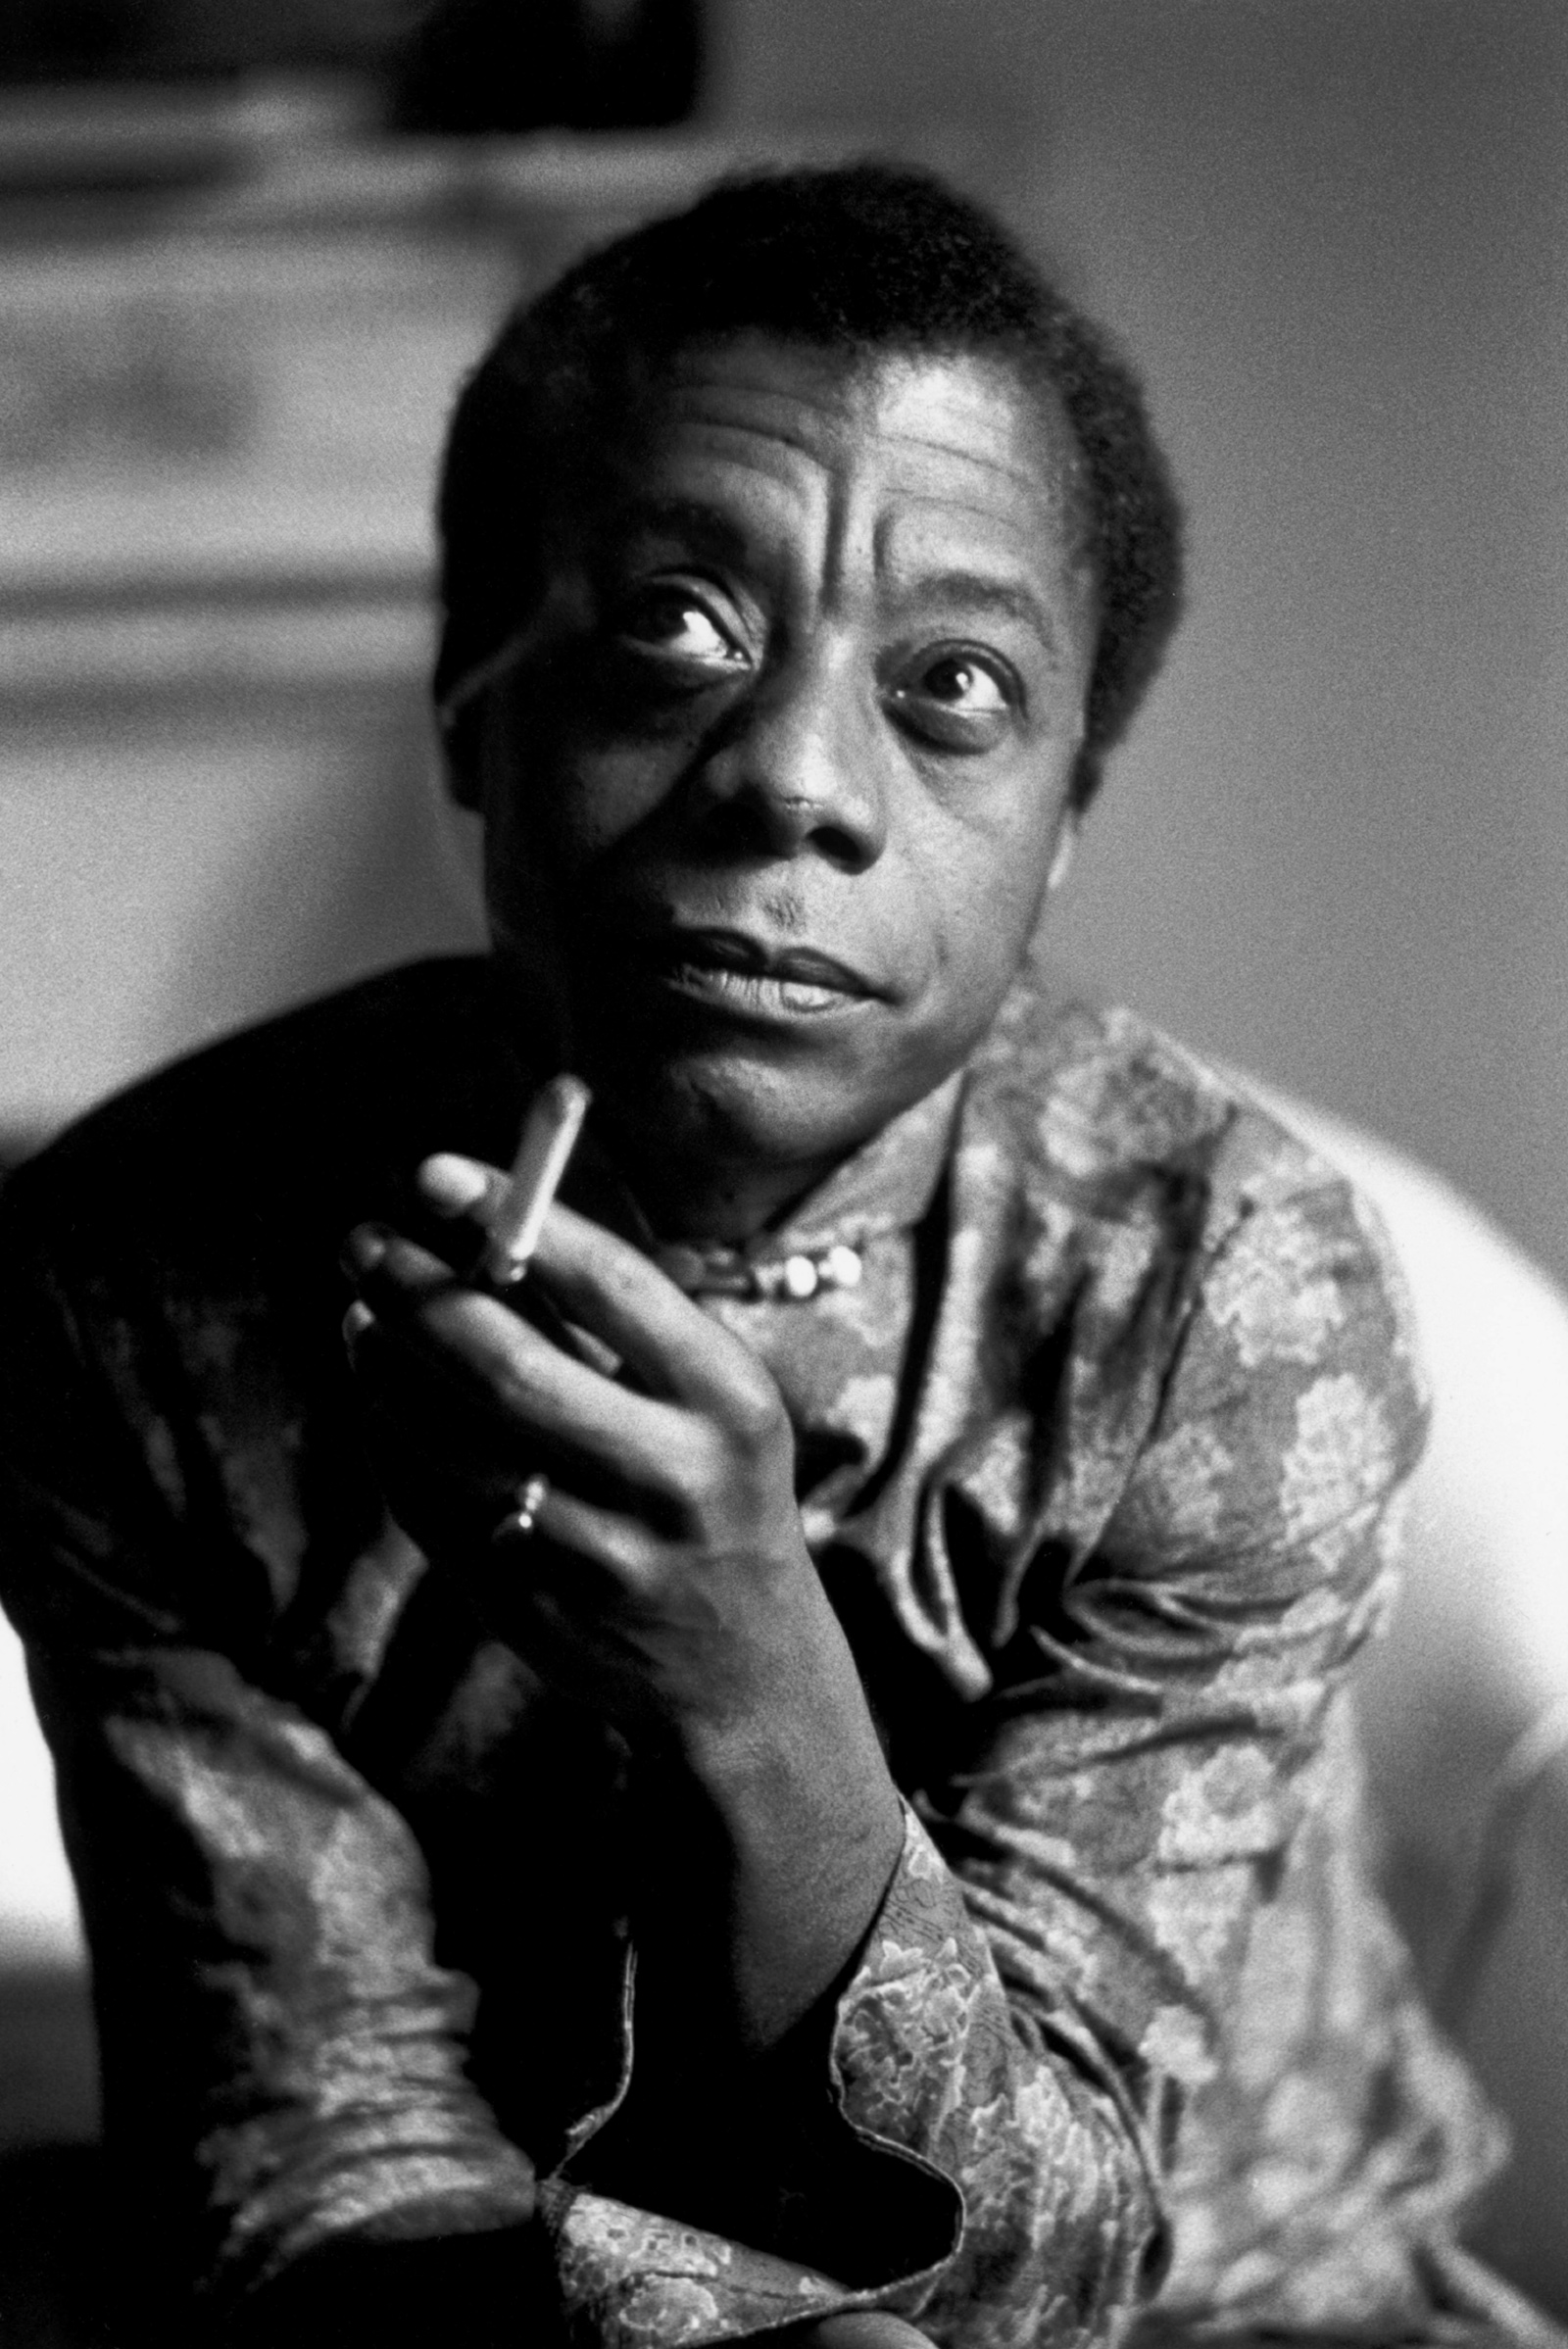 Discuss place and how james baldwin